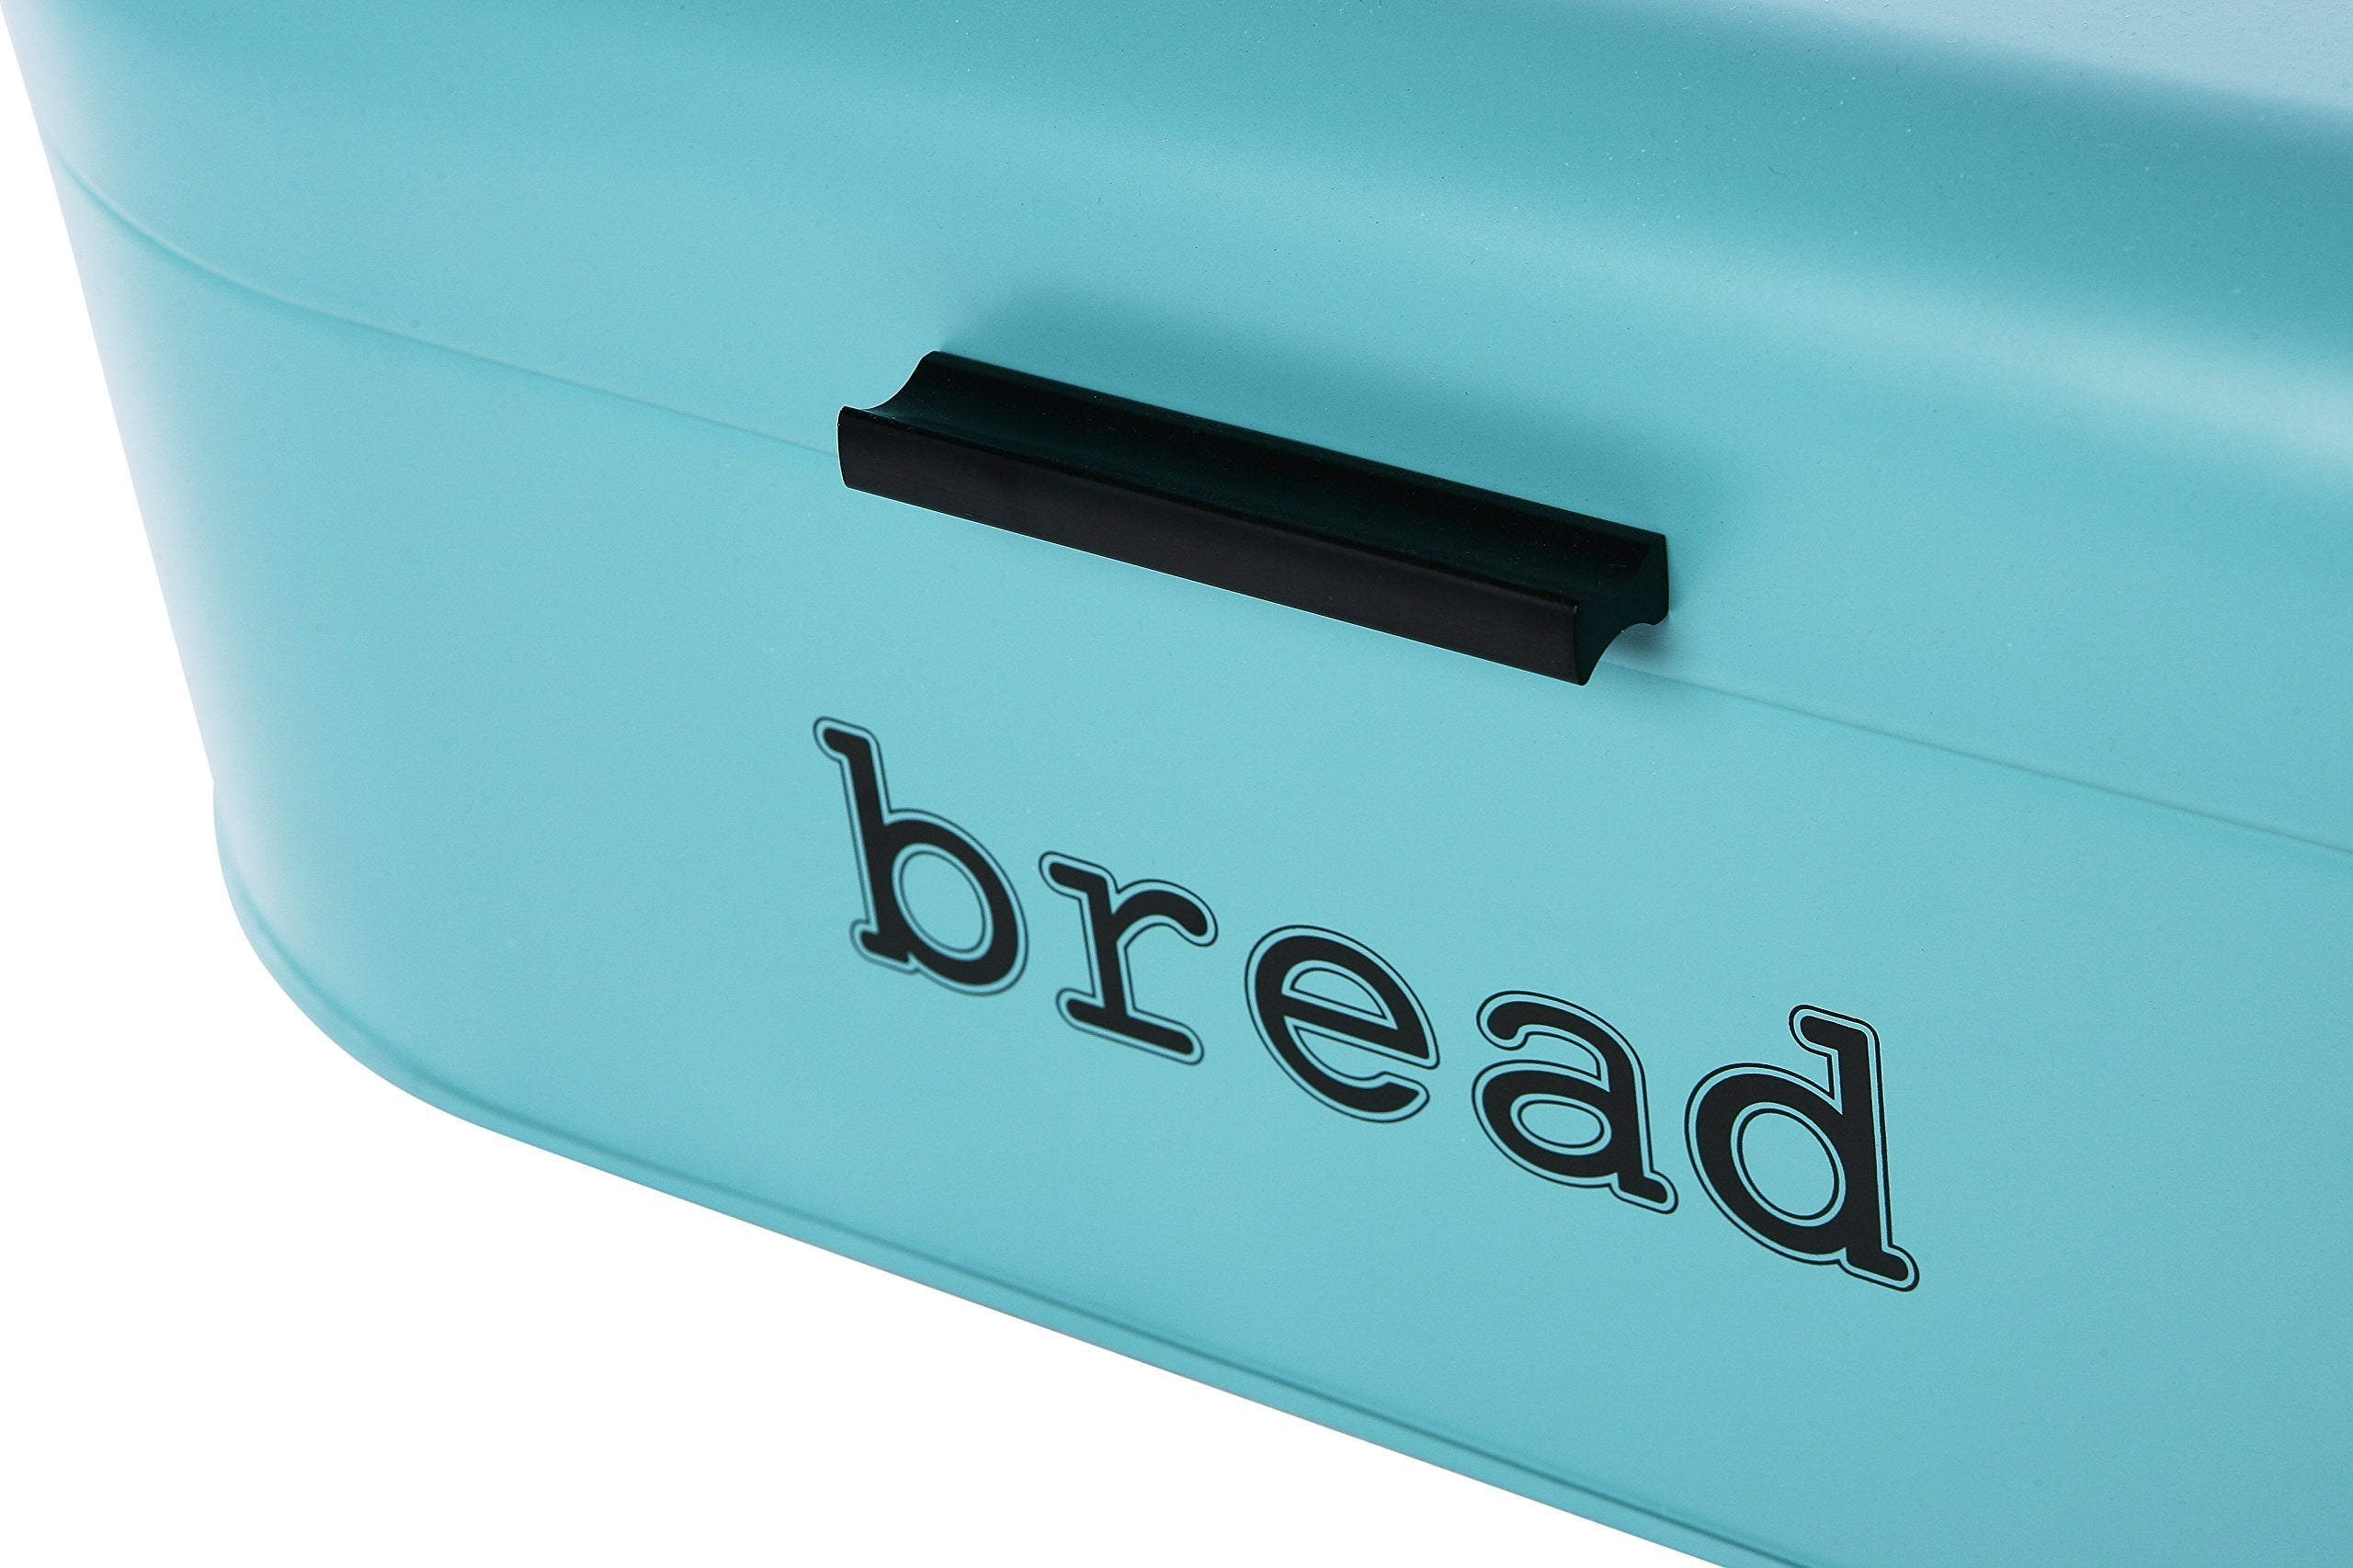 Online shopping large bread box for kitchen counter bread bin storage container with lid metal vintage retro design for loaves sliced bread pastries teal 17 x 9 x 6 inches